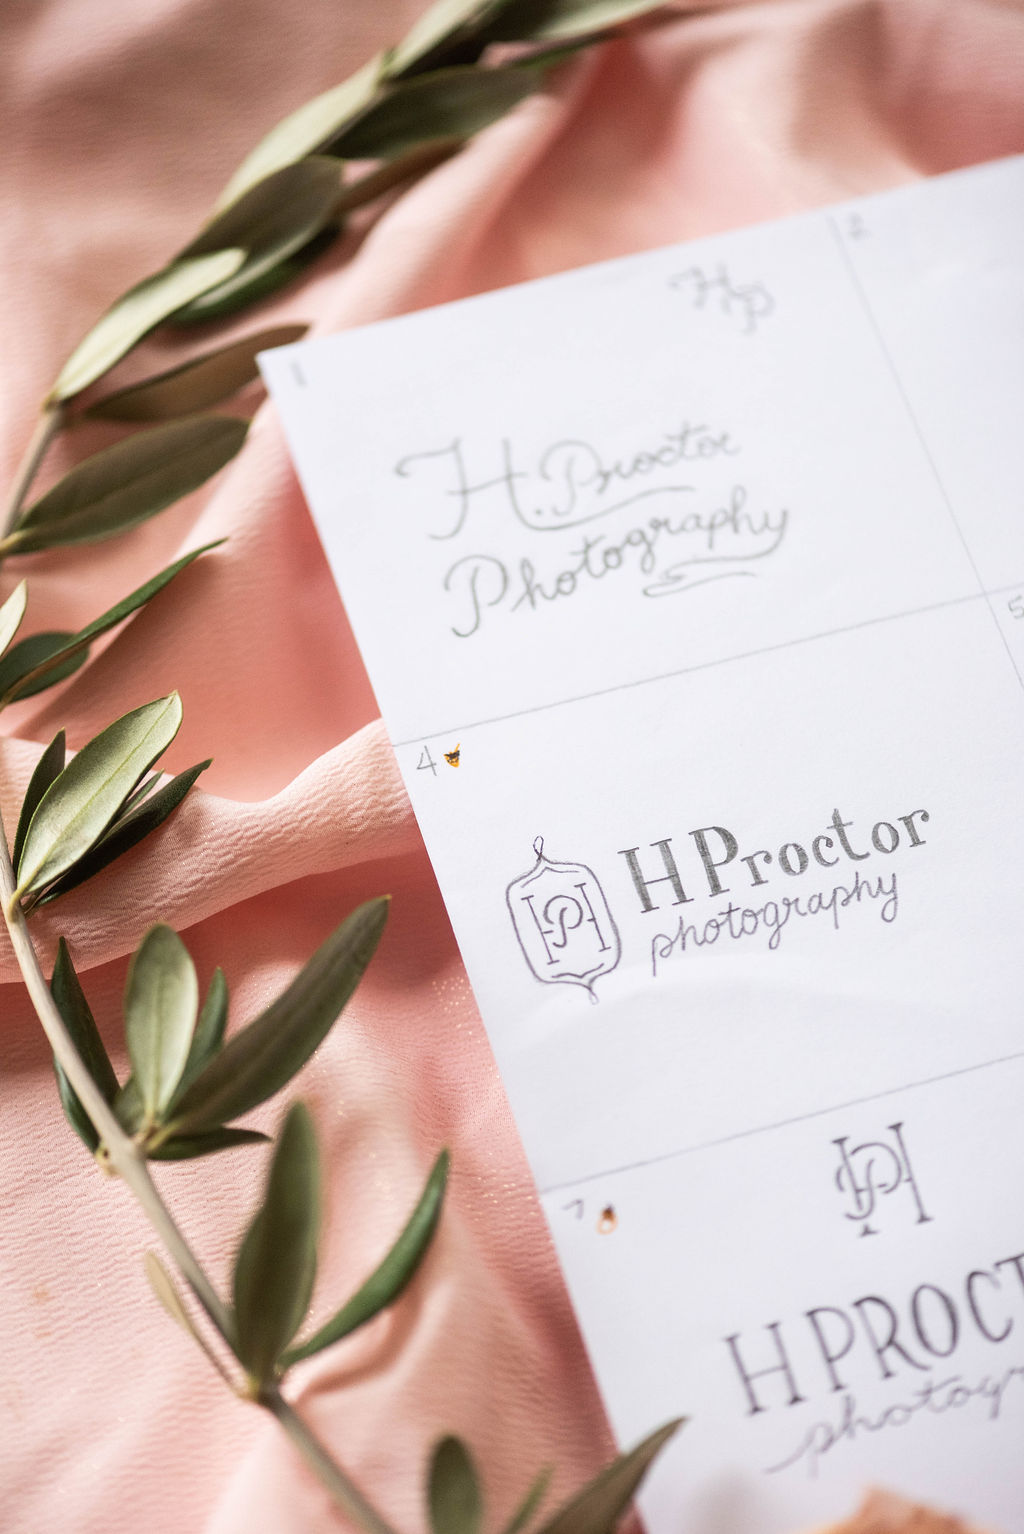 H Proctor Photographer – timeless romantic branding – Hayley Bigham Designs – Tulsa Oklahoma Branding Studio – professional monogram badge